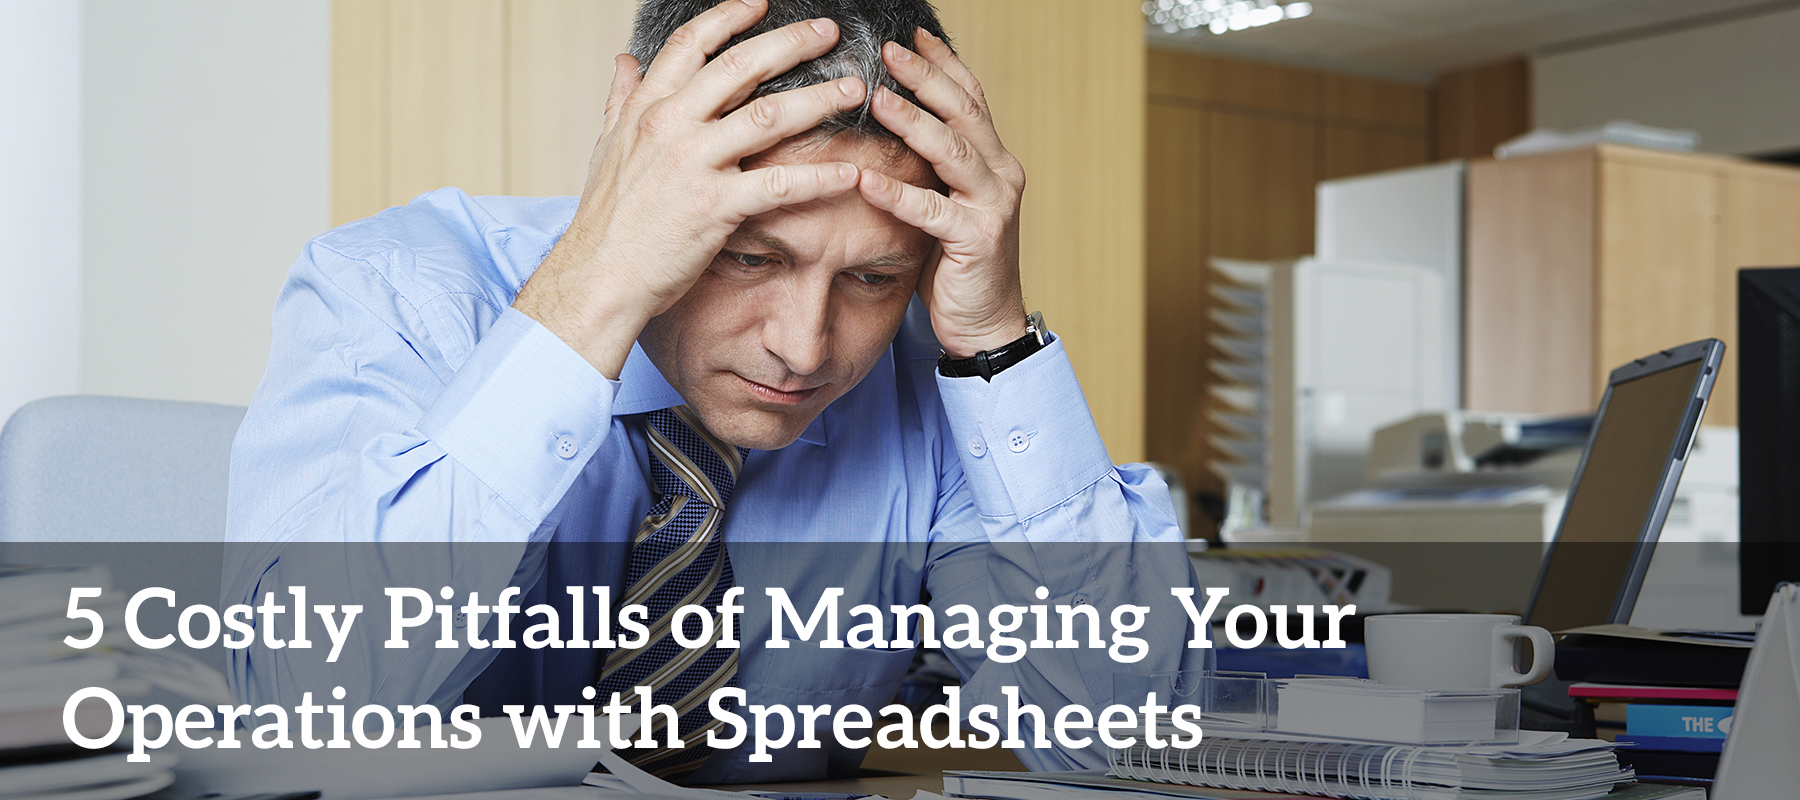 5 Costly Pitfalls of Managing Your Operations with Spreadsheets